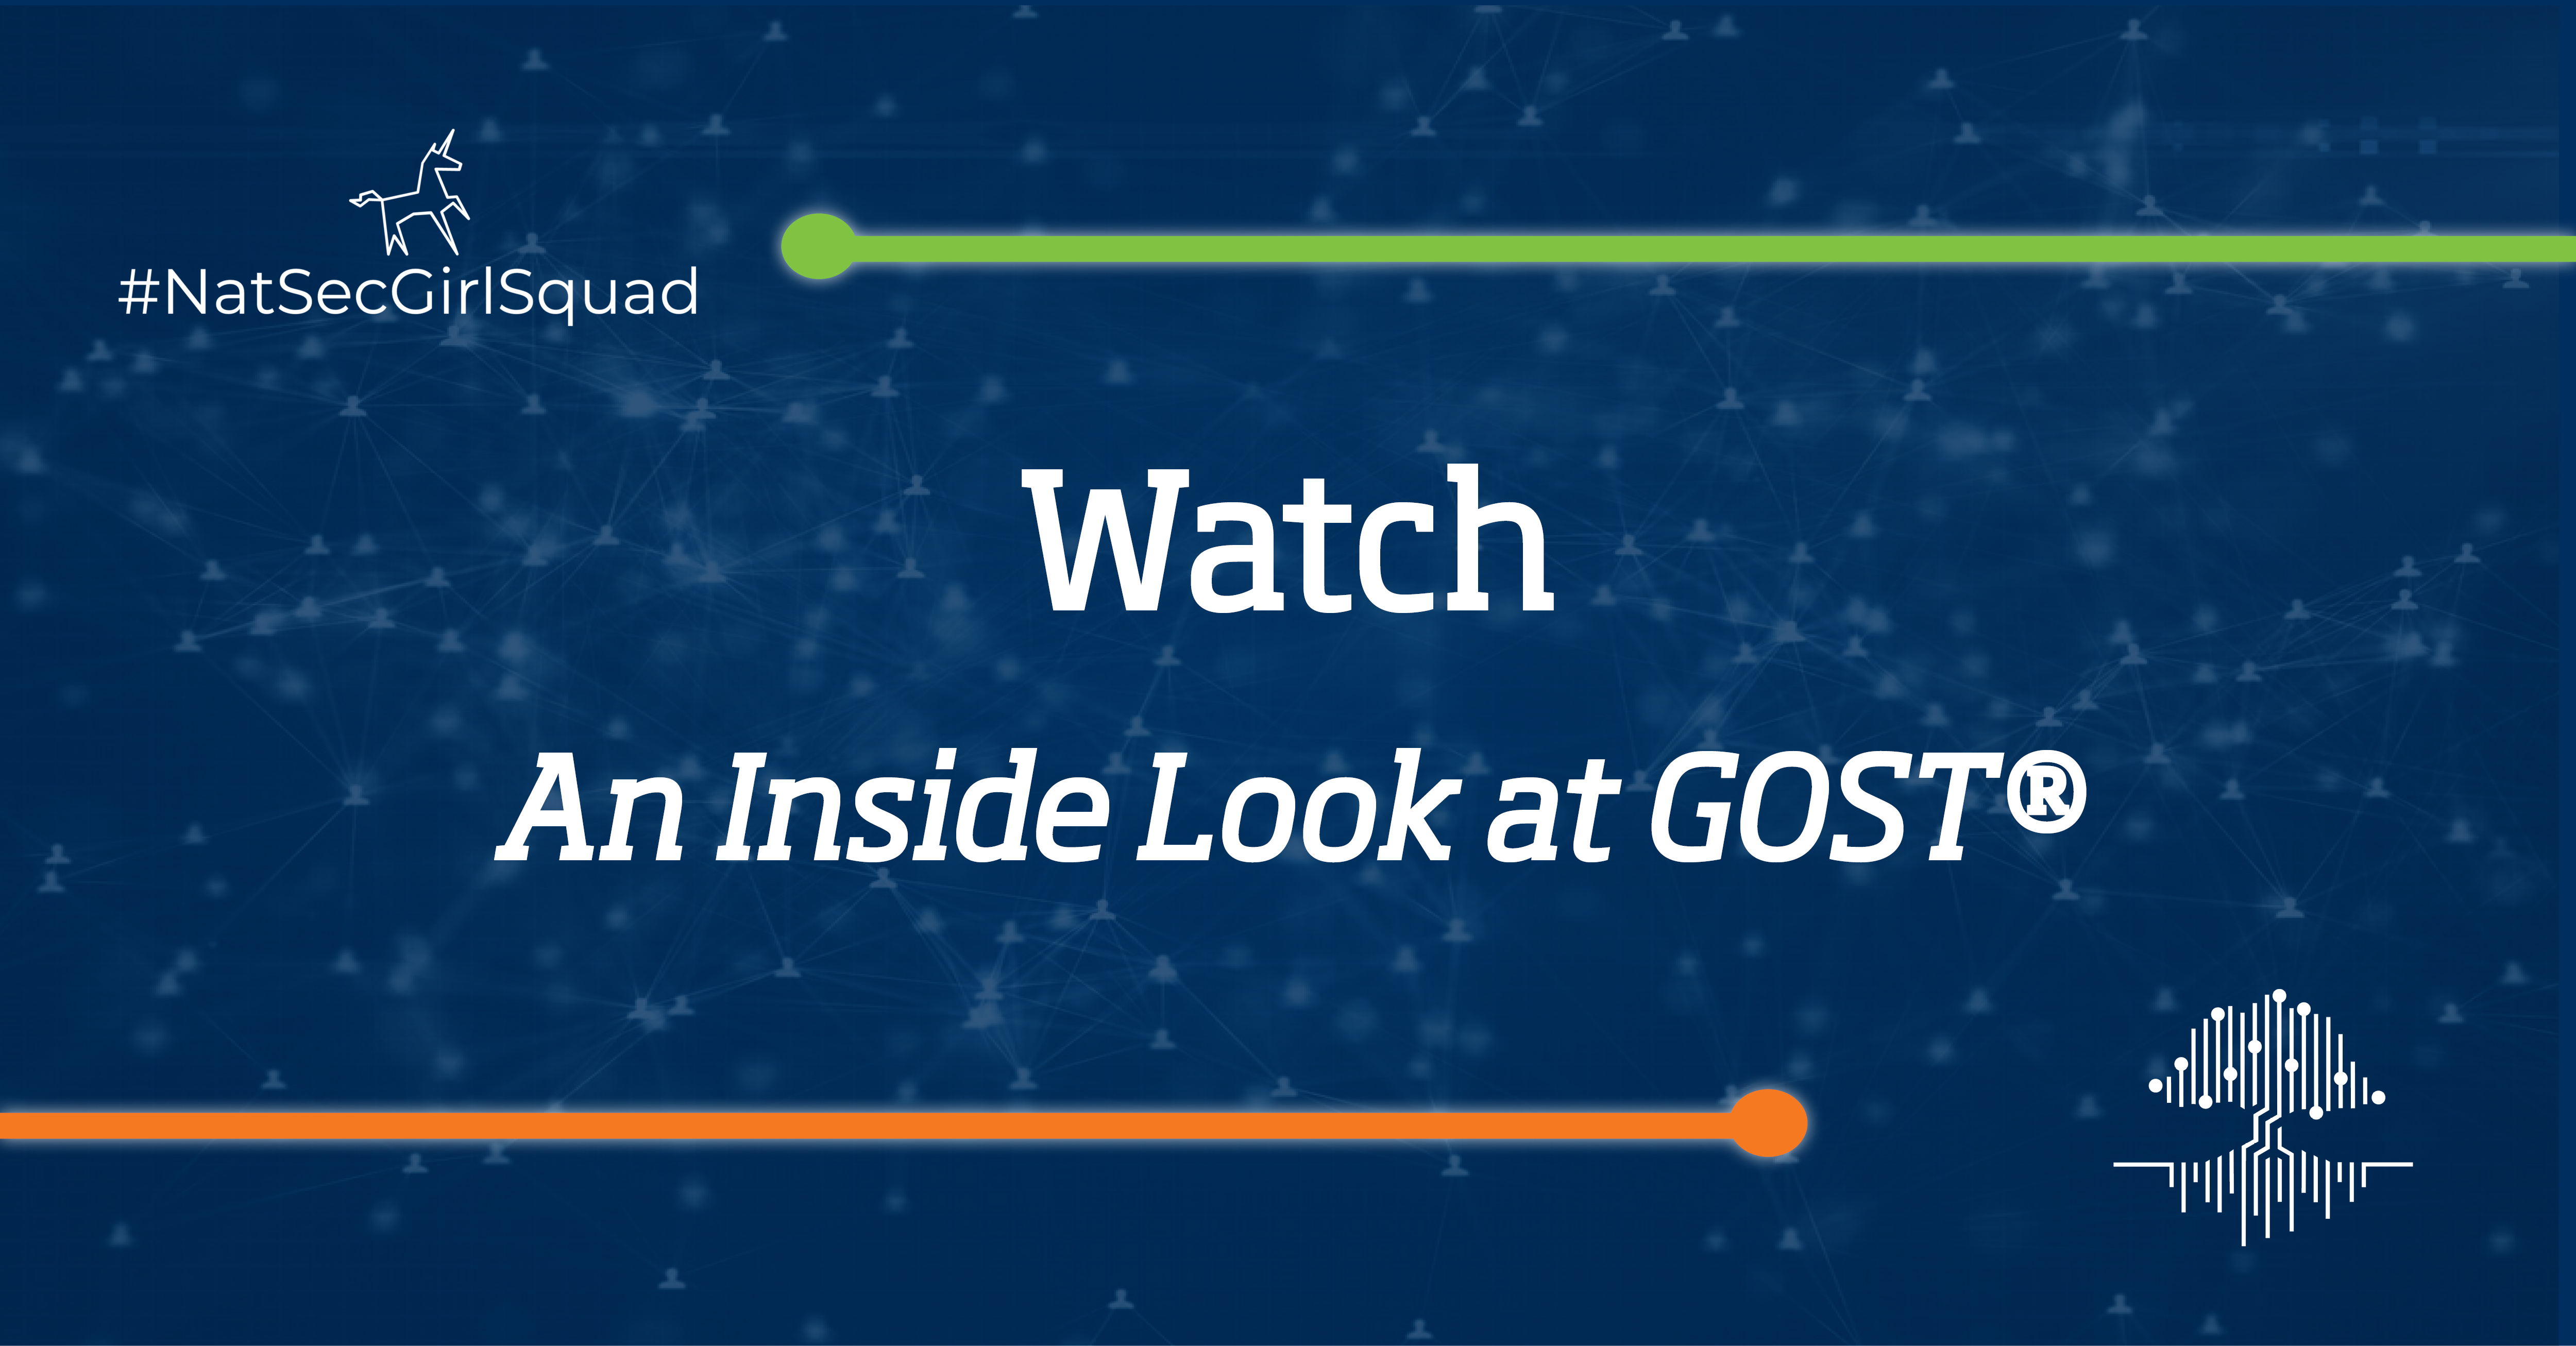 Webinar An Inside Look at GOST edited-1